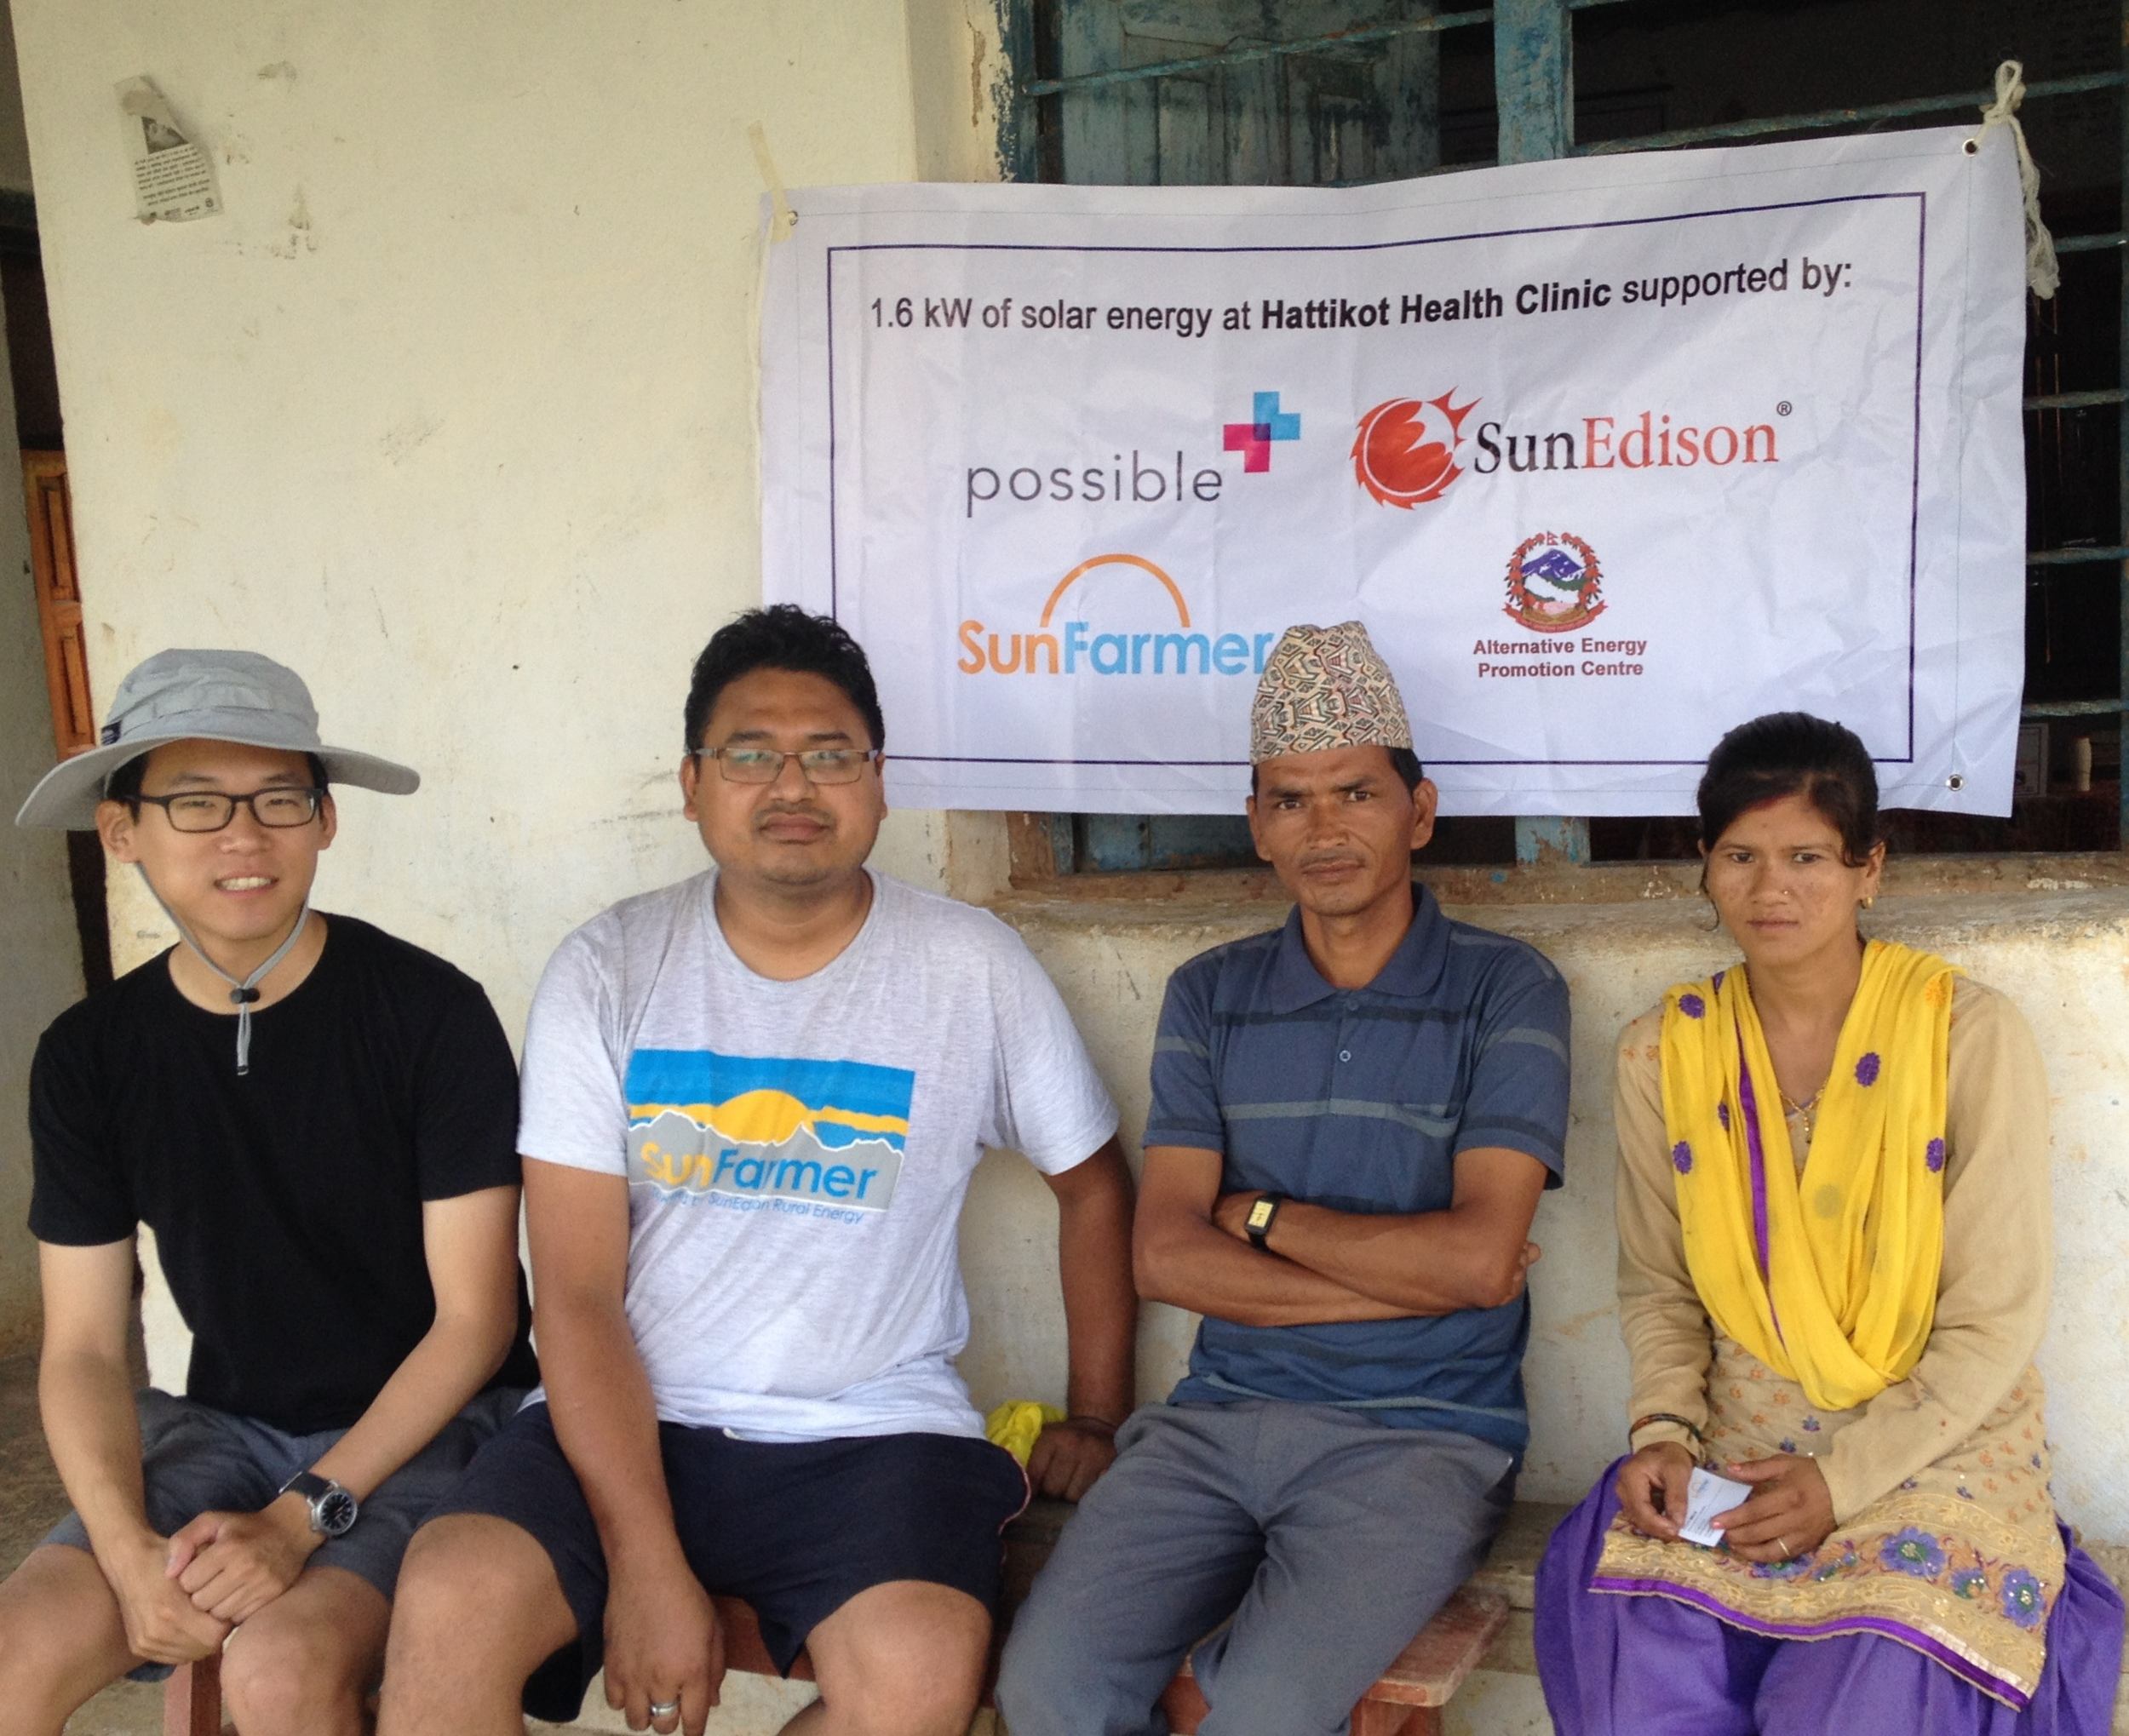 SunFarmer co-founder Andy Moon, Director of Engineering and Ops Avishek Malla, and staff members of Hattikot Health Clinic